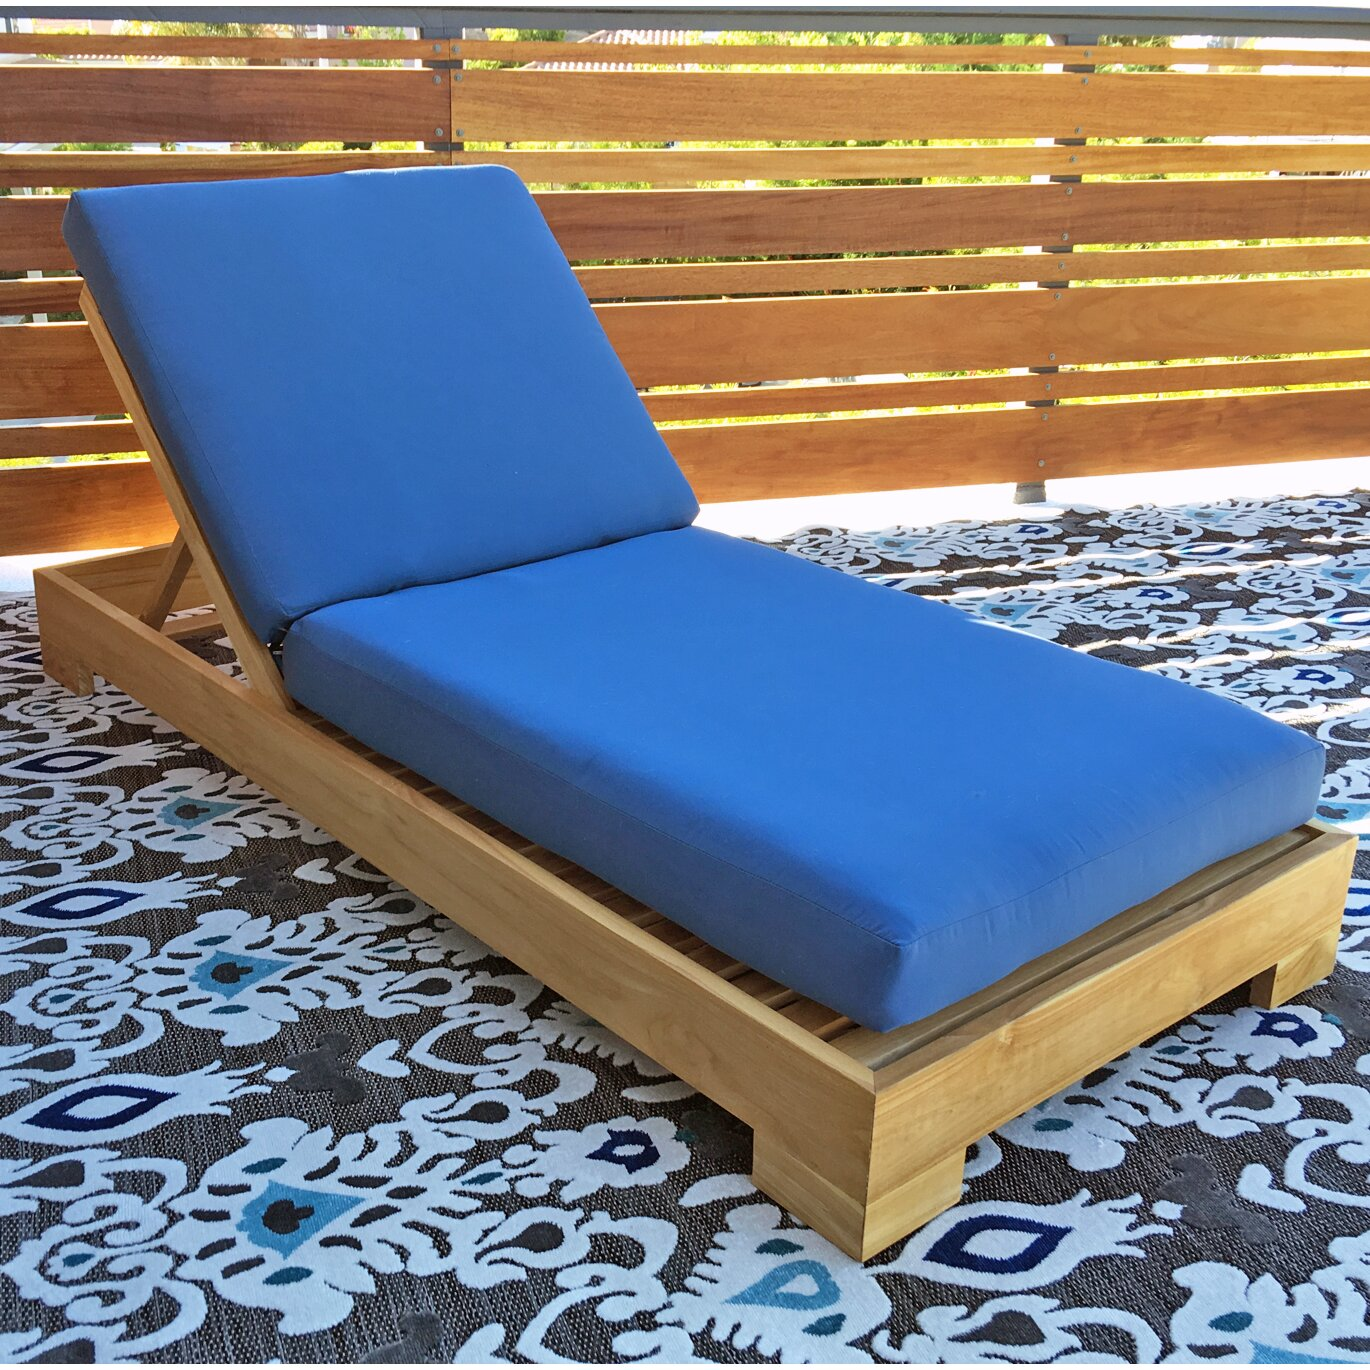 Willow creek designs outdoor sunbrella chaise lounge for Willow creek designs